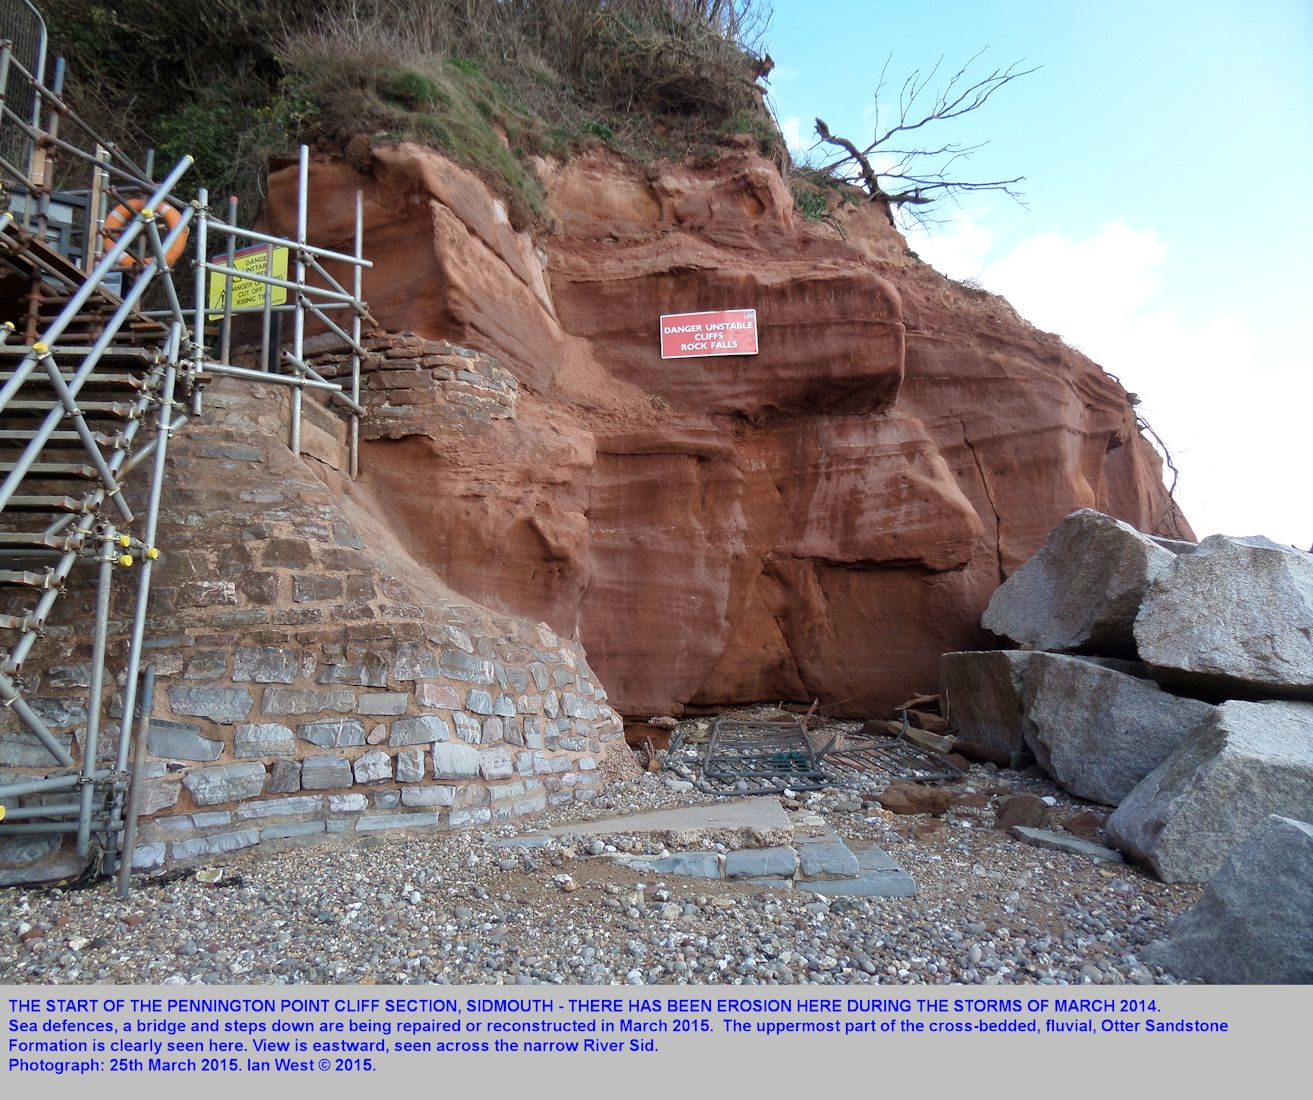 The first exposure of the Otter Sandstone, eastward from Sidmouth, Devon, across the footbridge and down some steps to the beach, seen in 2015 under repair after 2014 storm damage